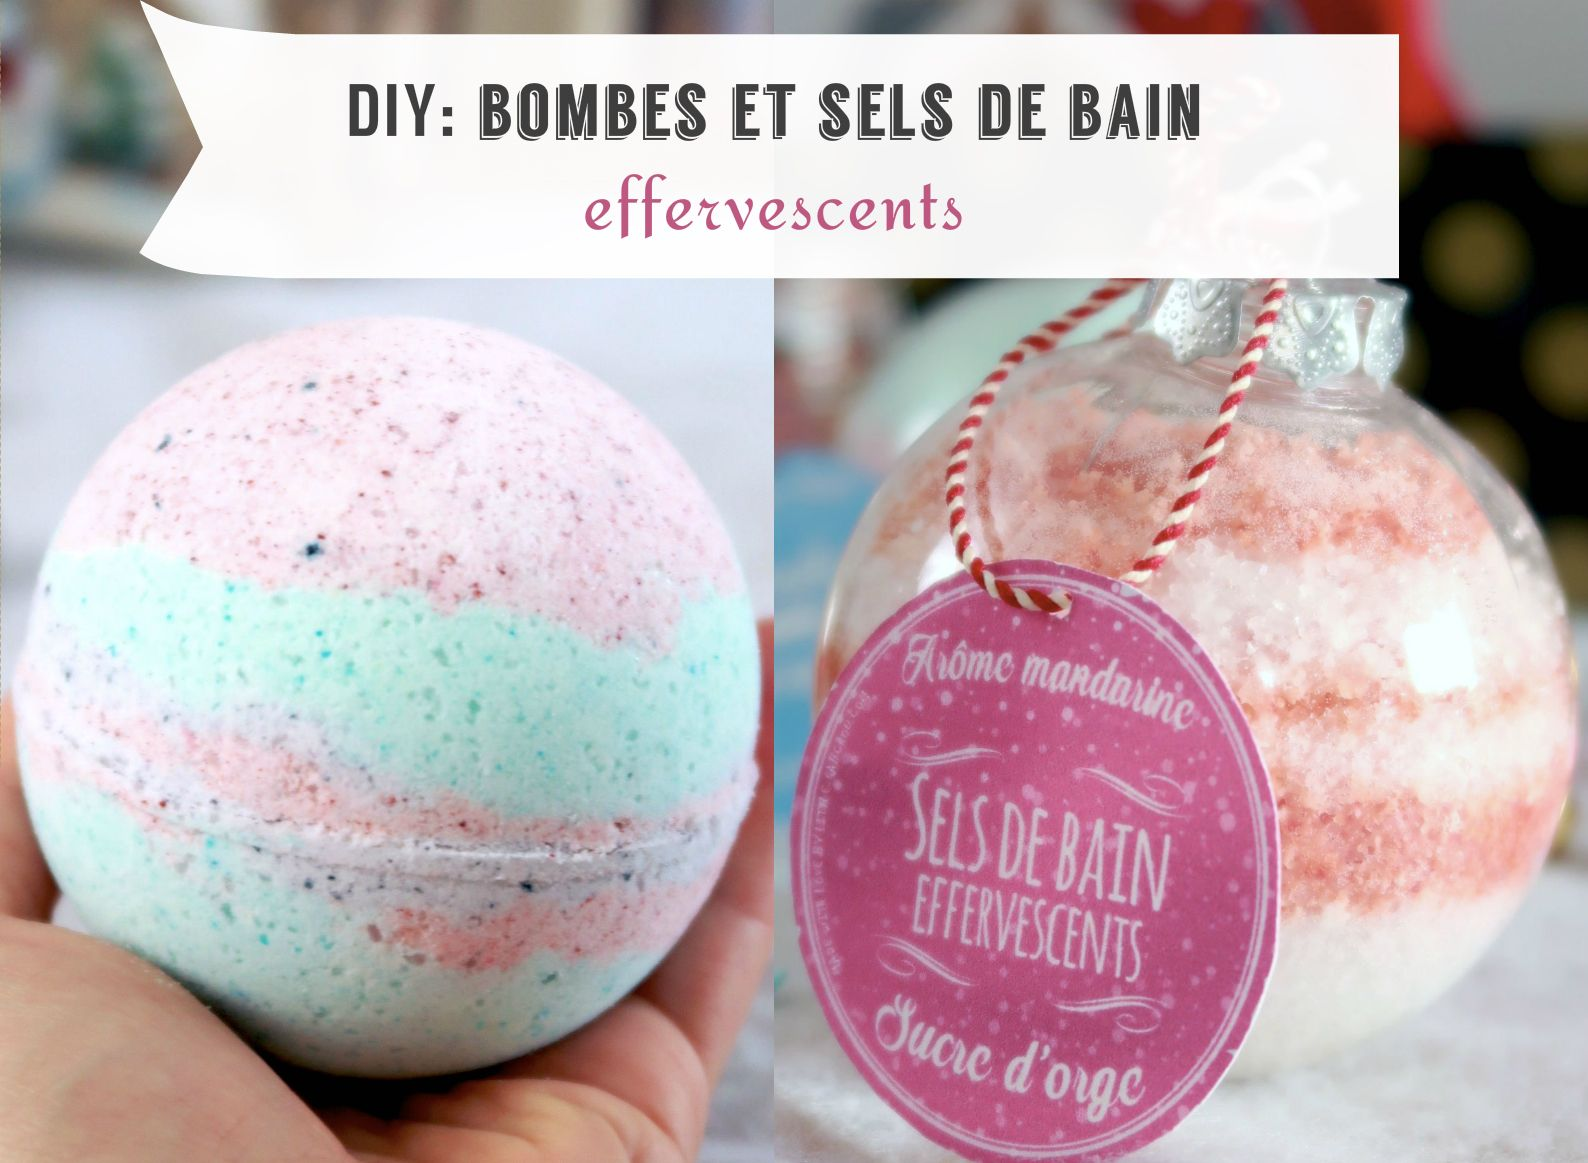 tuto bombes de bain fa on lush et sels de bain effervescents fait maison cr ation diy id e. Black Bedroom Furniture Sets. Home Design Ideas